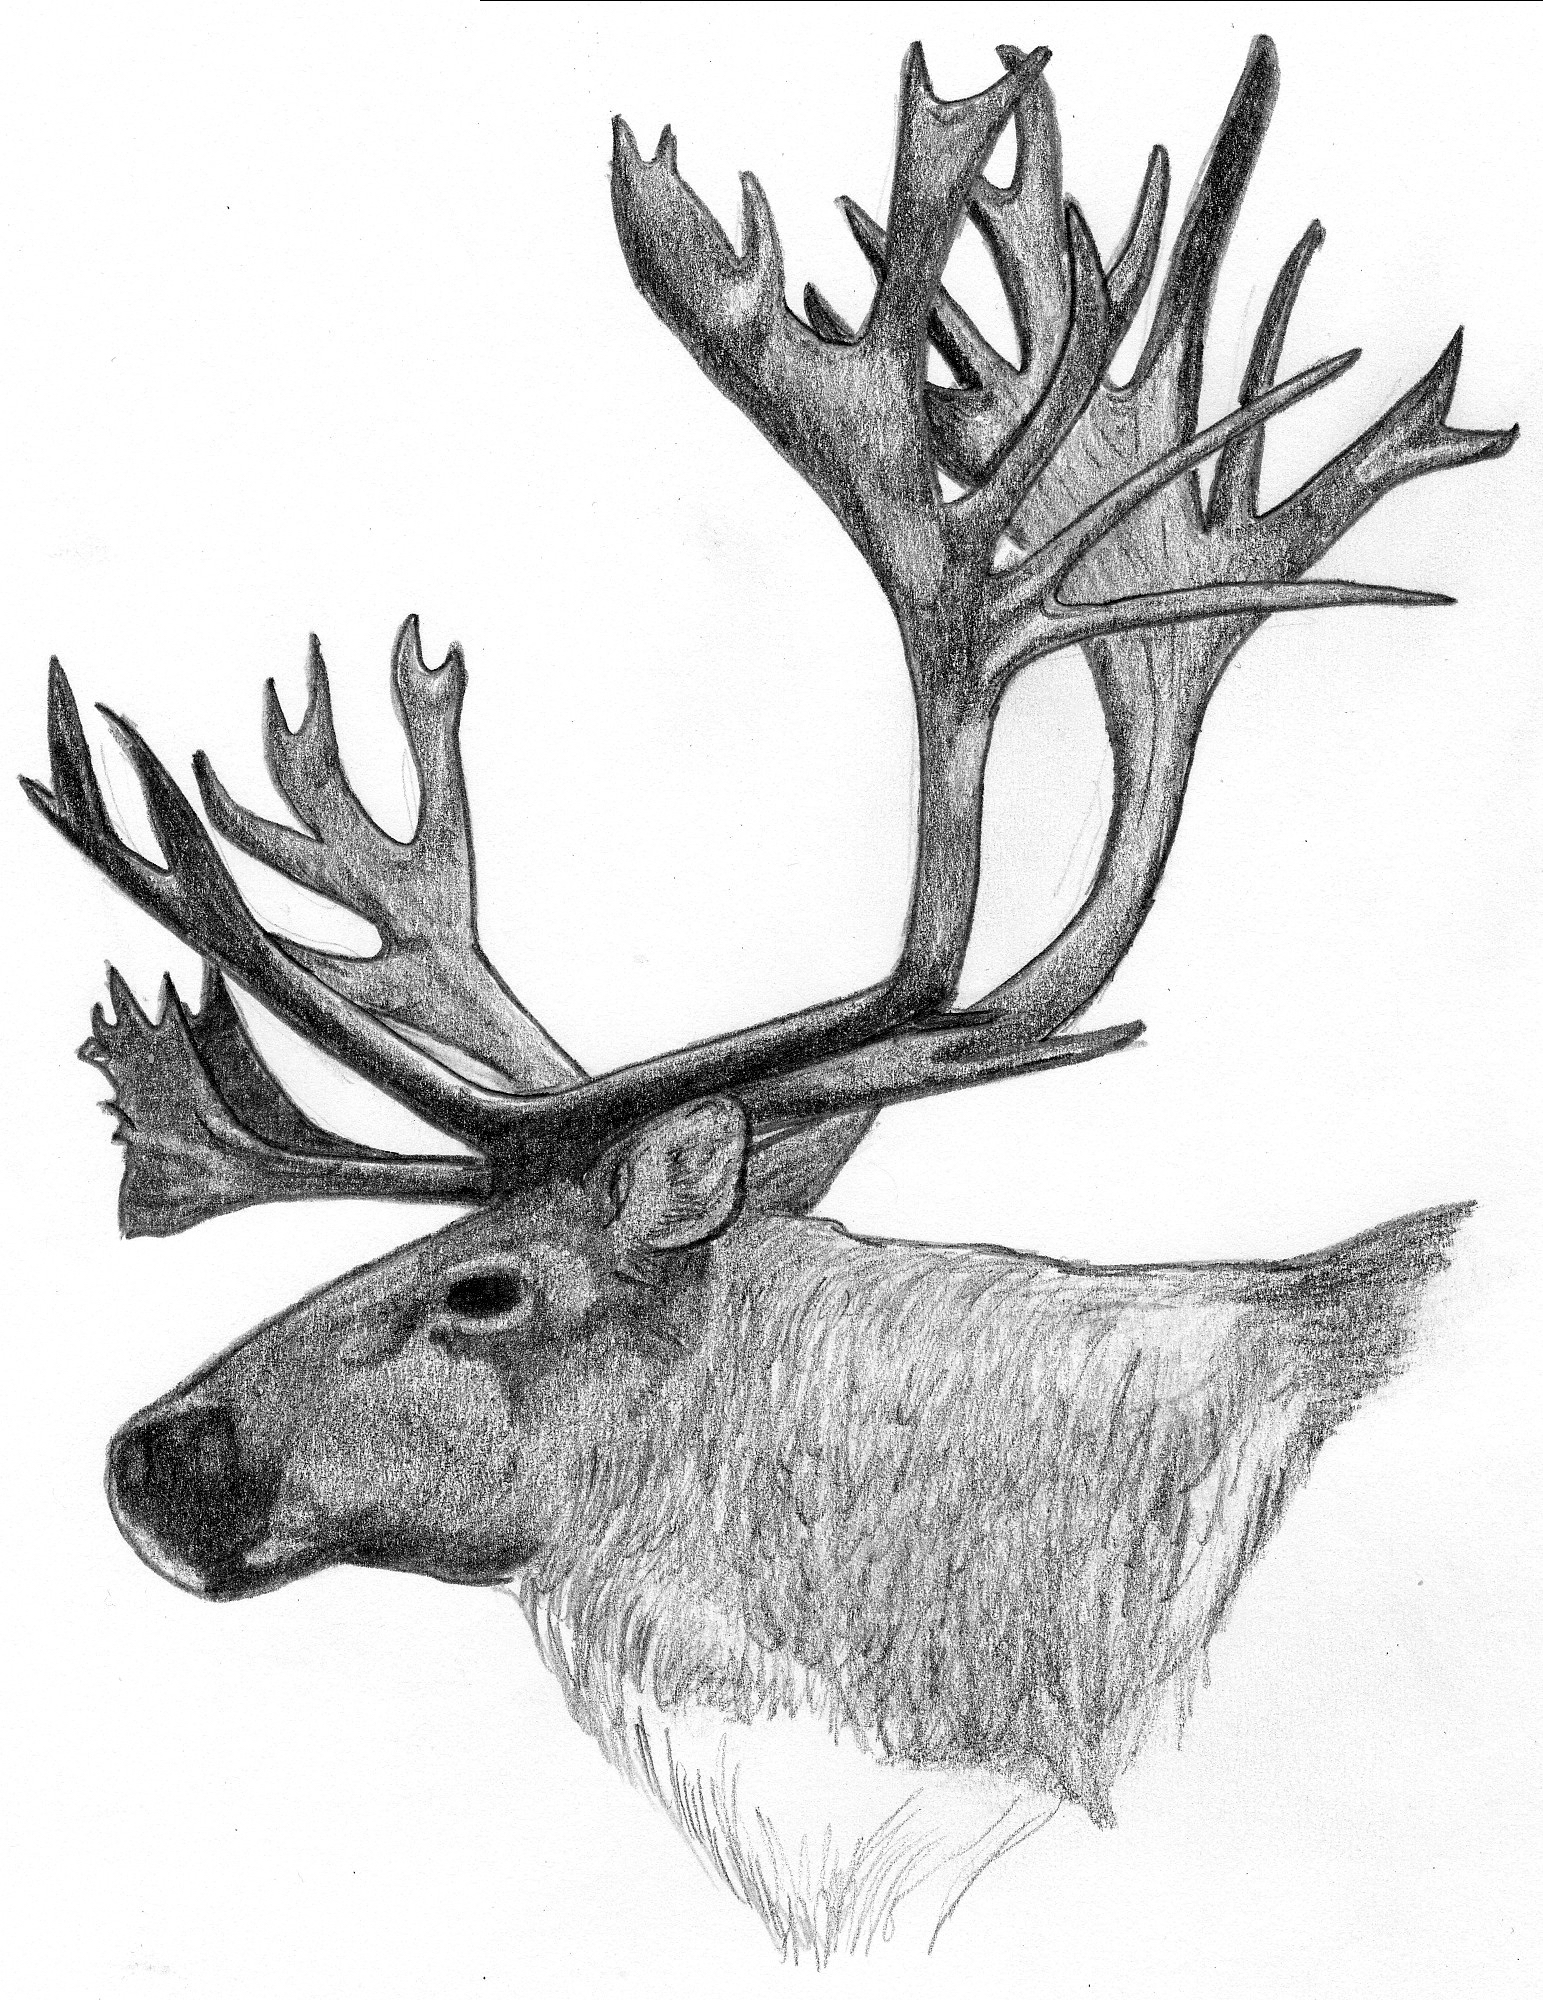 Drawn reindeer caribou Inspiration antlers antlers Drawing: References